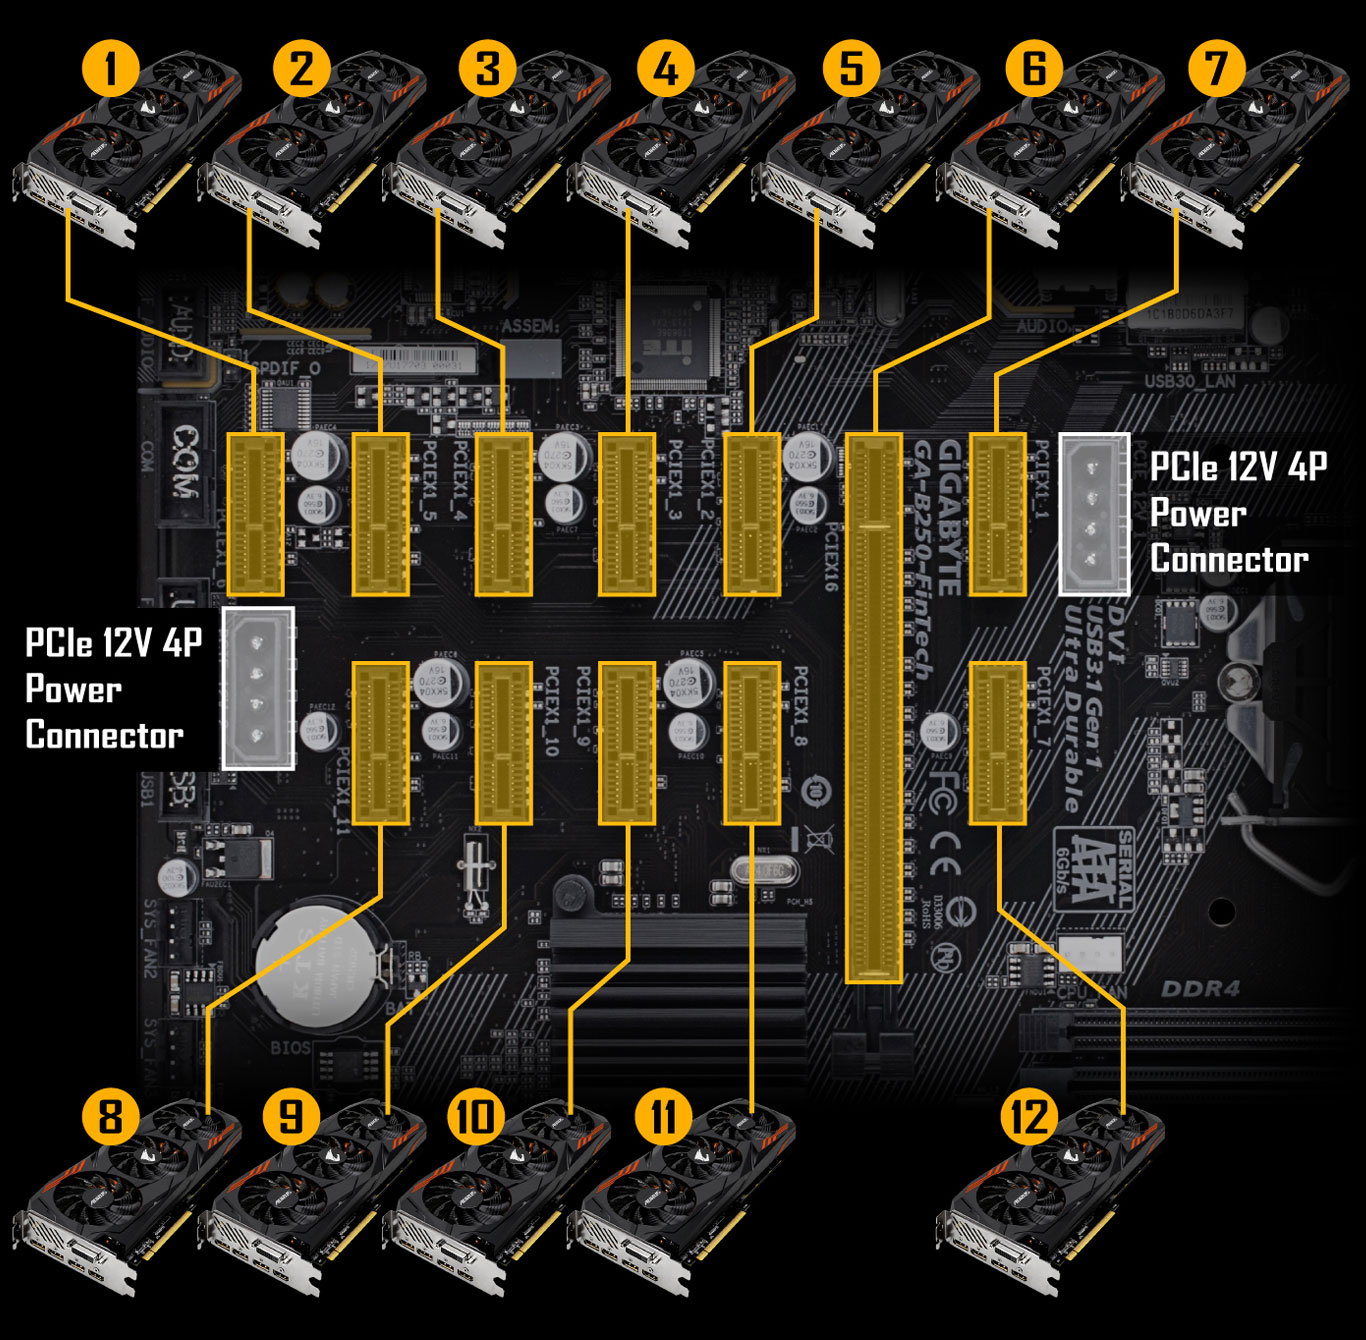 Ga B250 Fintech Rev 10 Motherboard Gigabyte Global Pin Image Pinout For Connector Diagrams Monitor Atx Dvi Transistor On When Two Or More Graphics Cards Are Installed Be Sure To Connect The Power Cable From Supply Pcie 12v 1 2 Provide